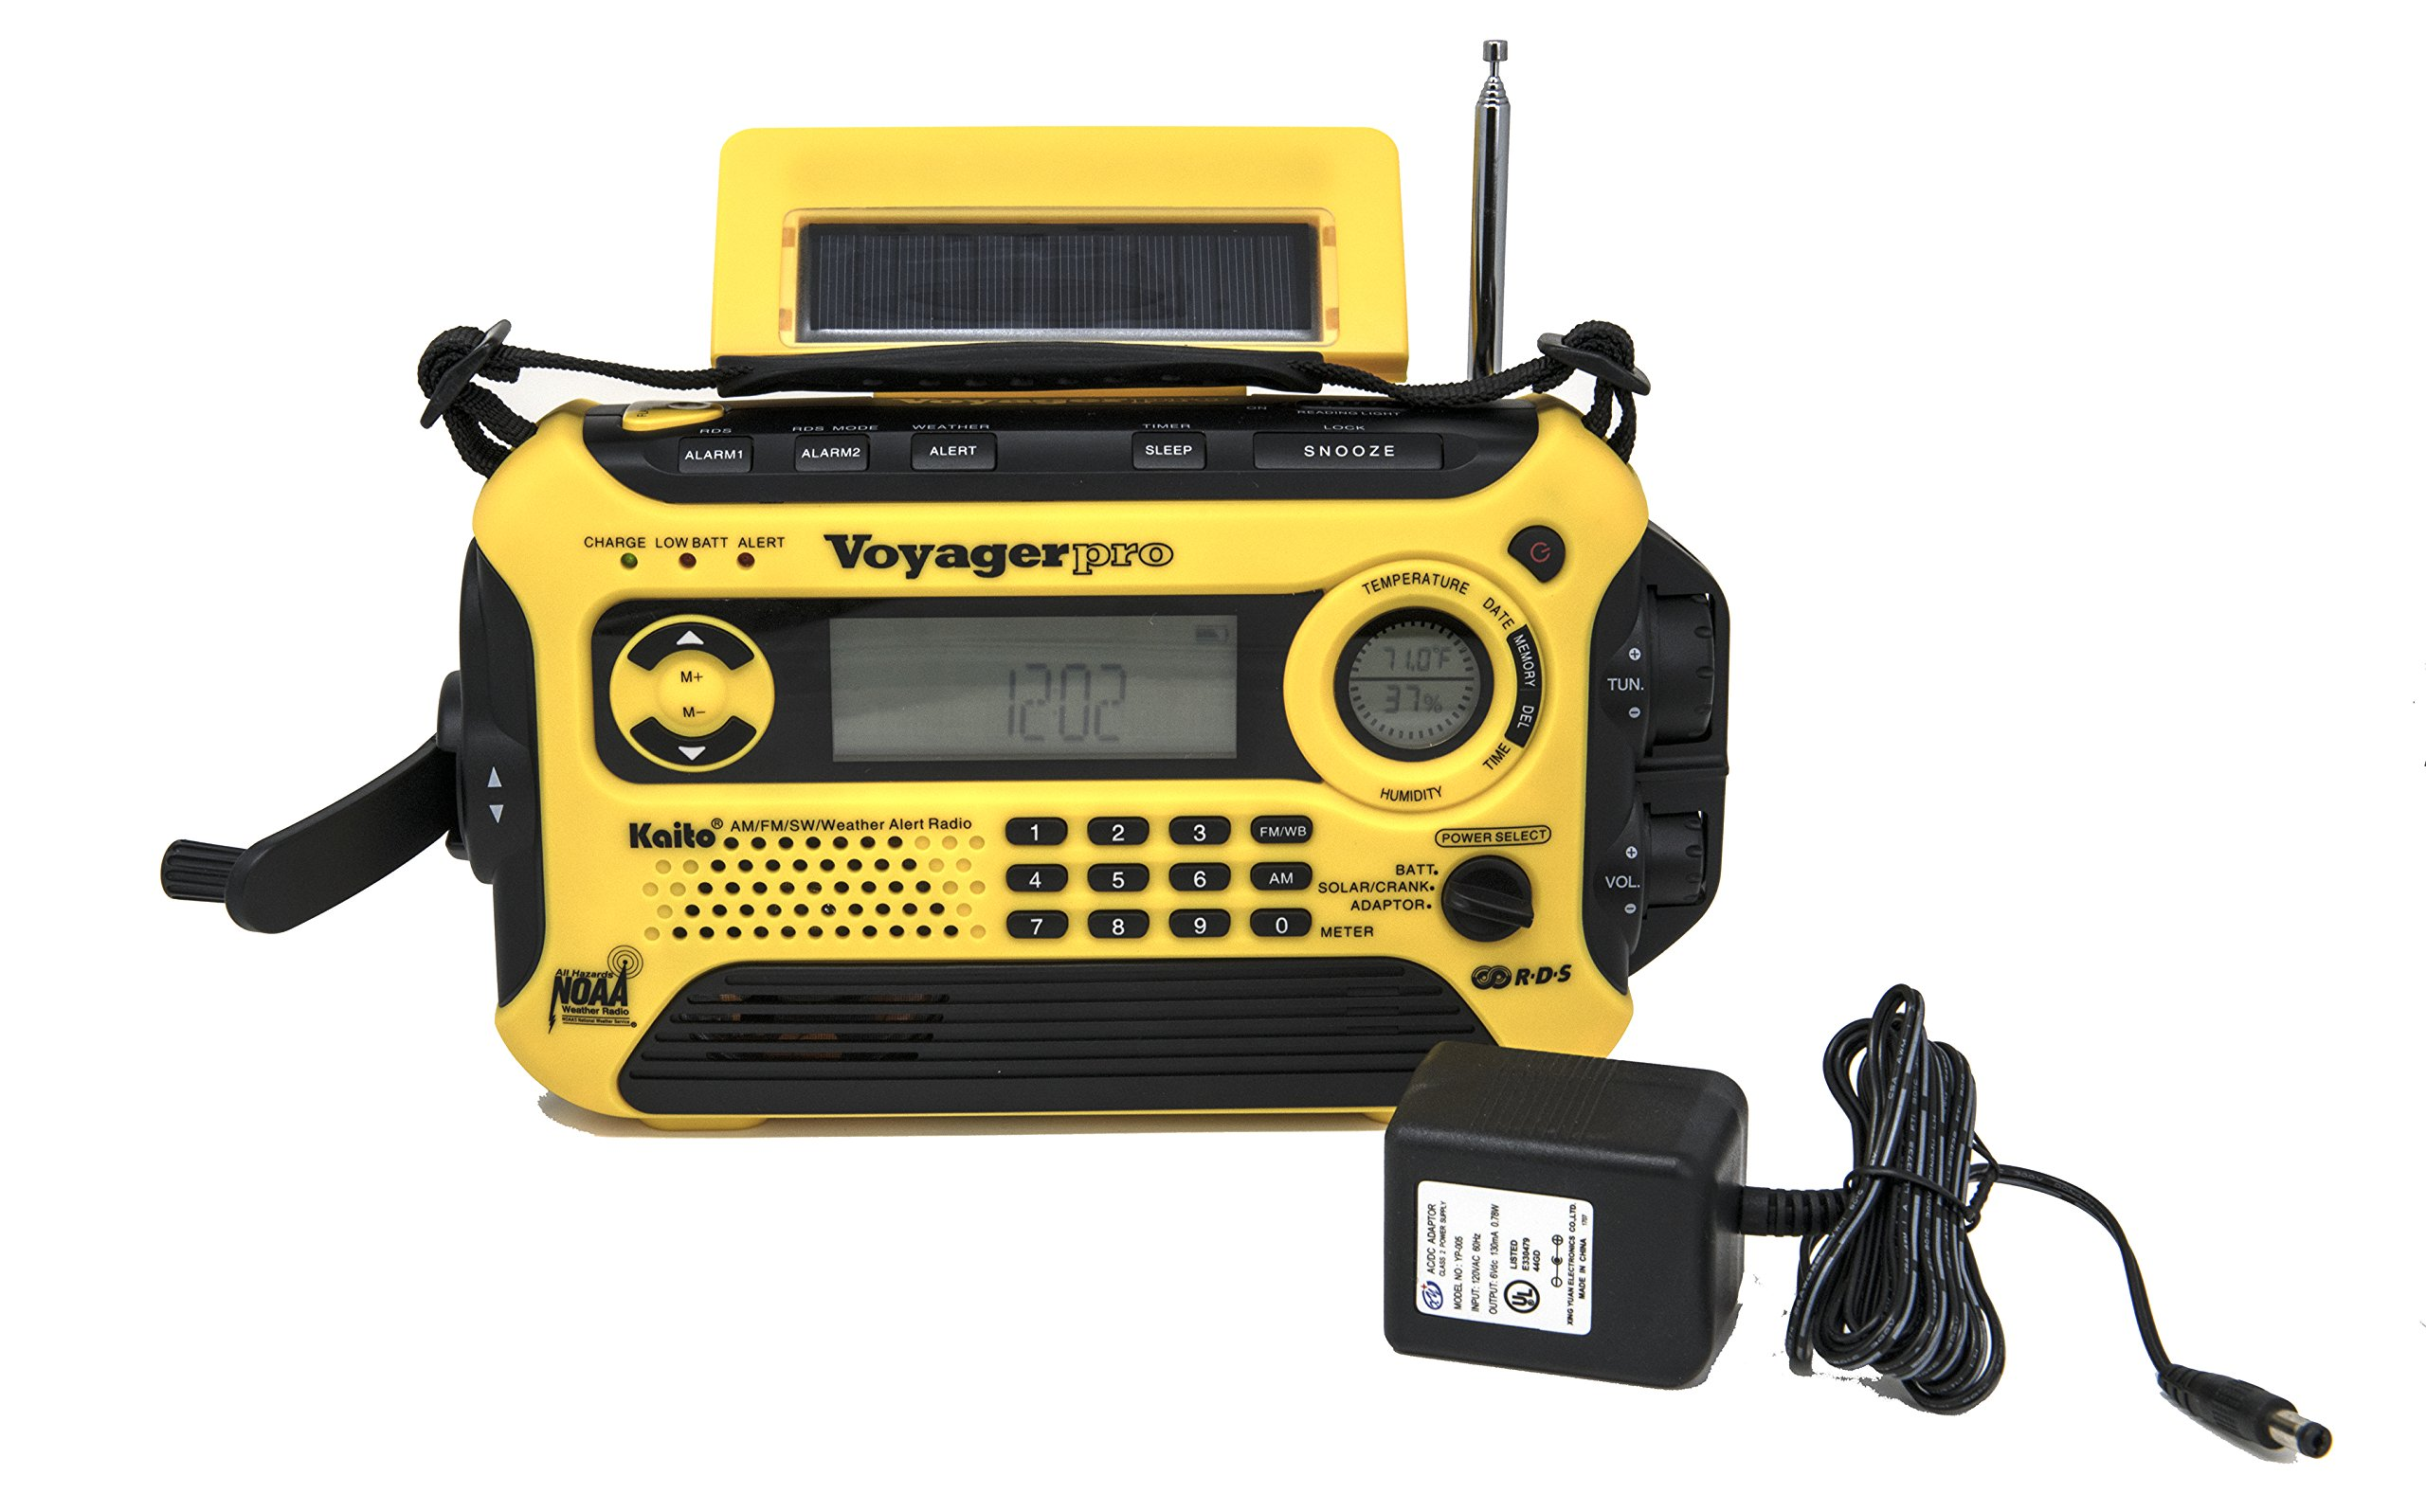 Kaito Voyager Pro KA600 Digital Solar Dynamo Crank Wind Up AM/FM/LW/SW & NOAA Weather Emergency Radio with Alert, RDS & Smart Phone Charger, Yellow (AC Wall Adapter Included) by Kaito (Image #1)